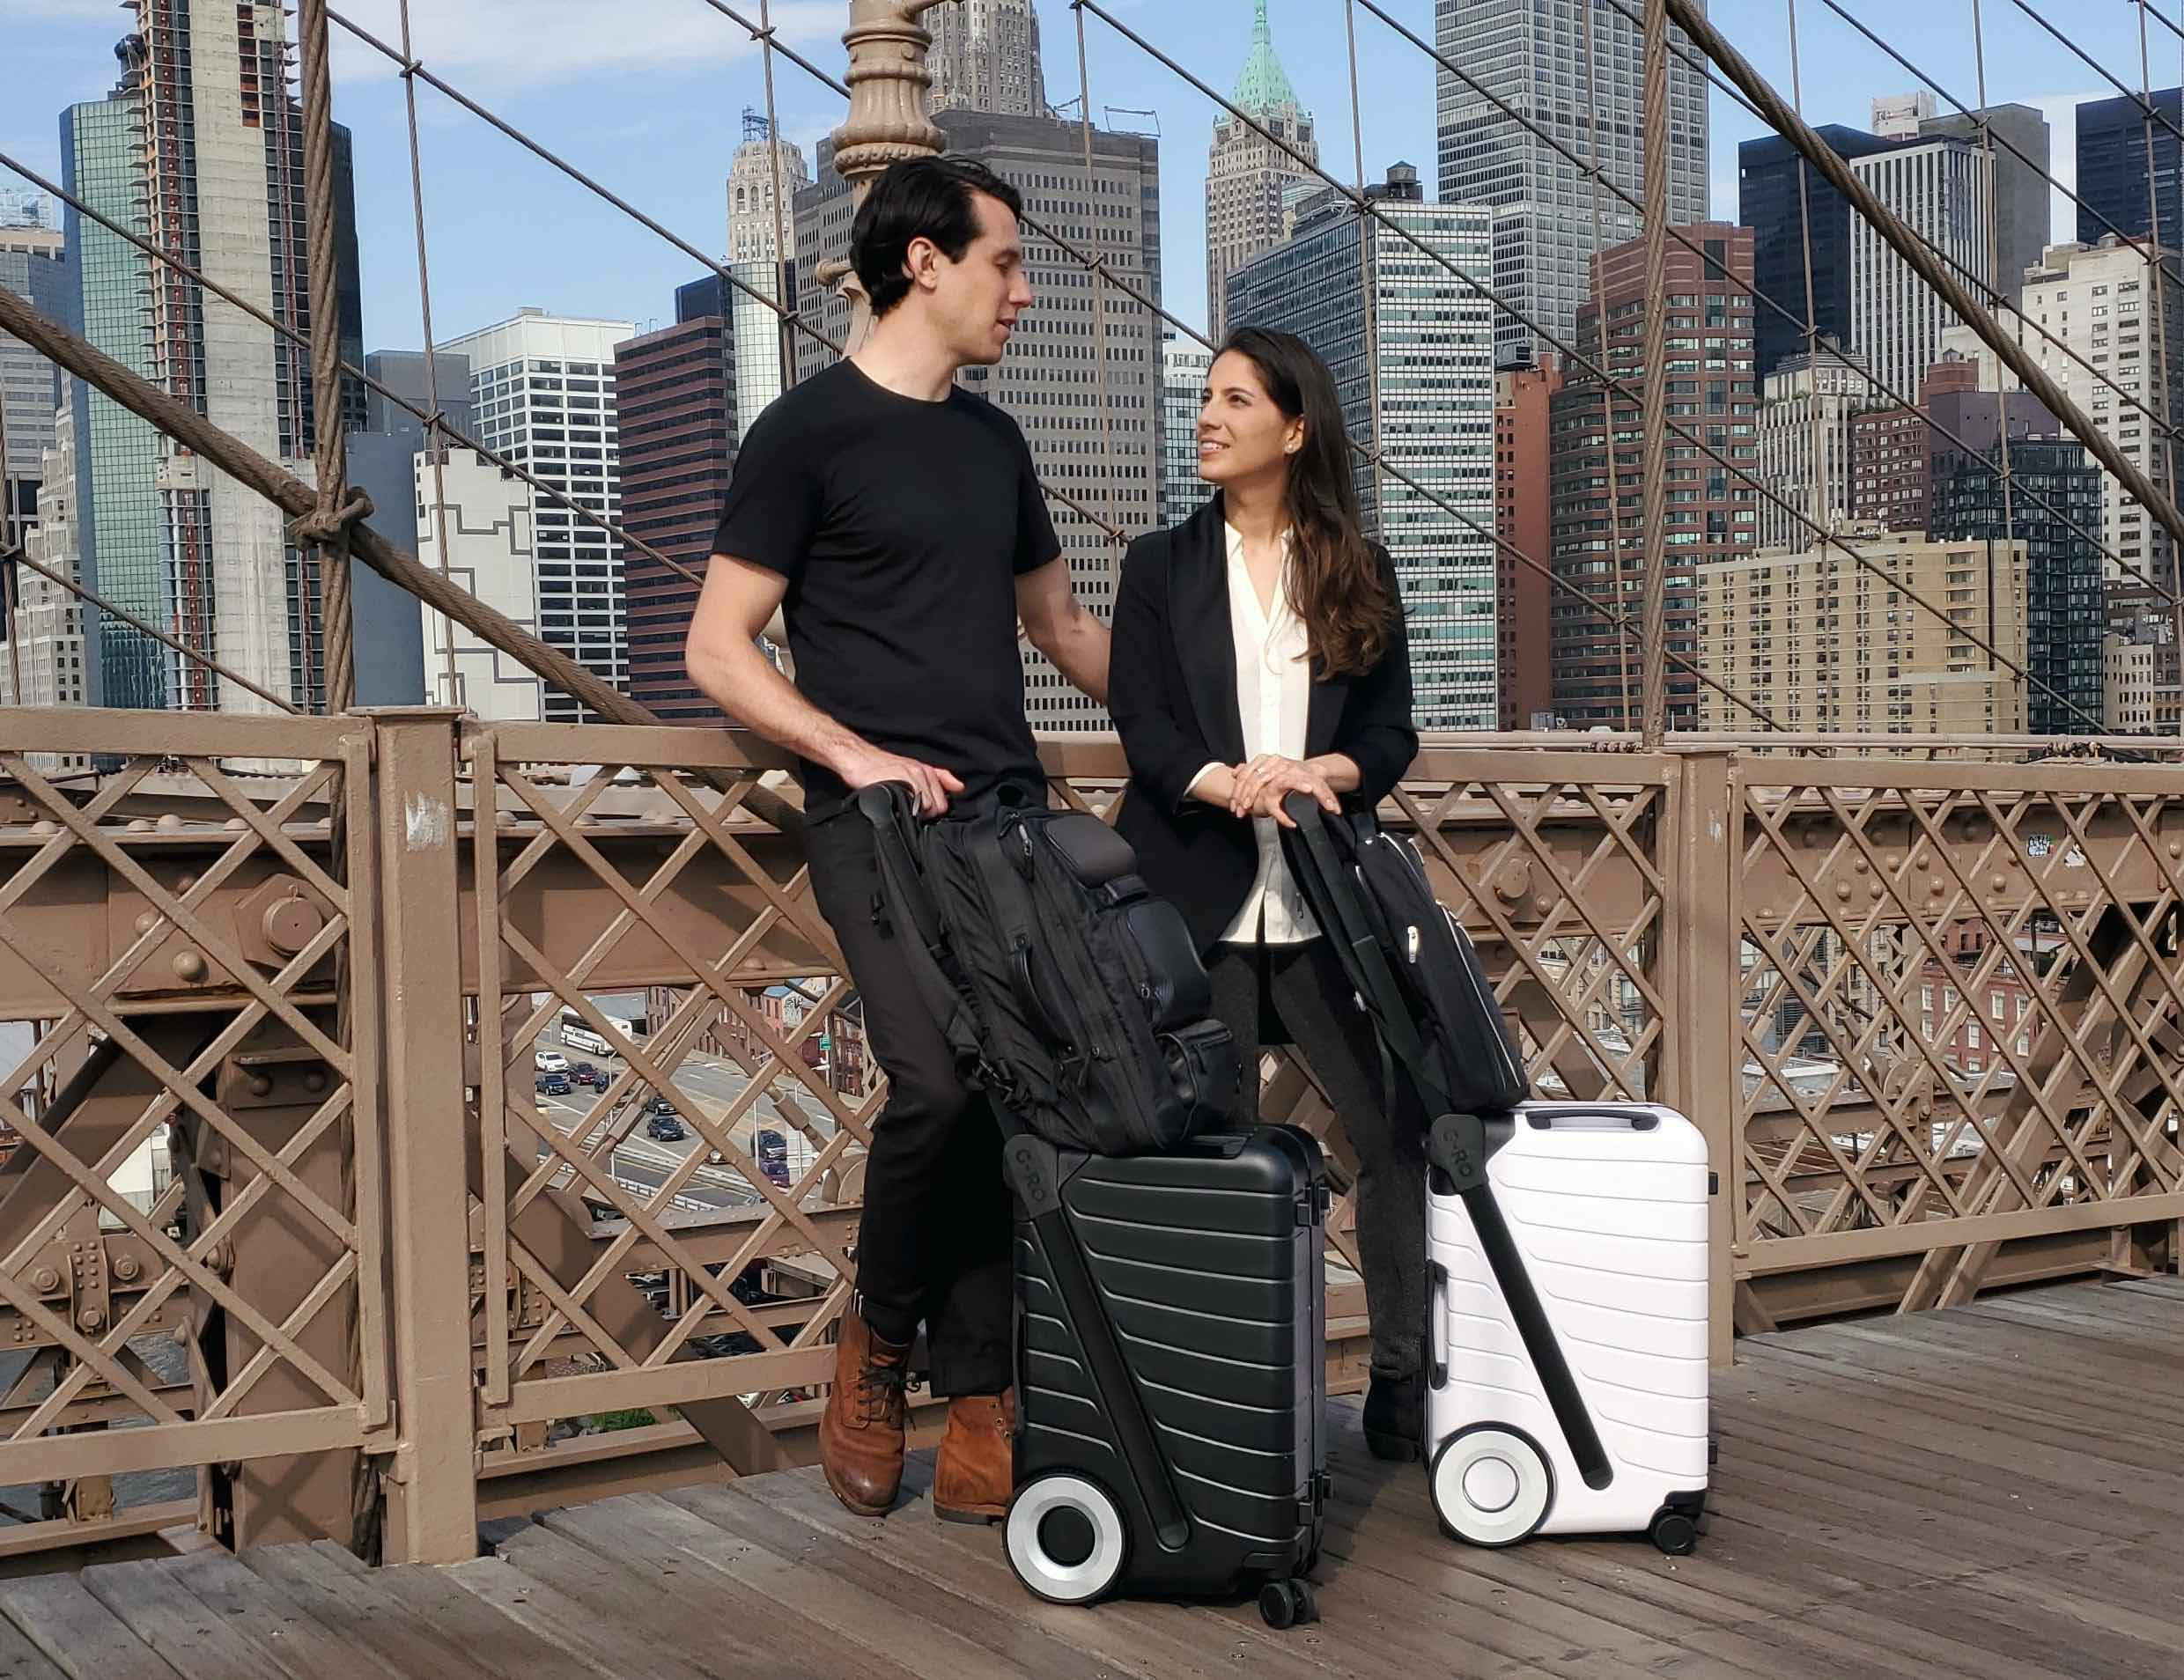 G-RO SIX Effortless Spinner Luggage makes light of any load